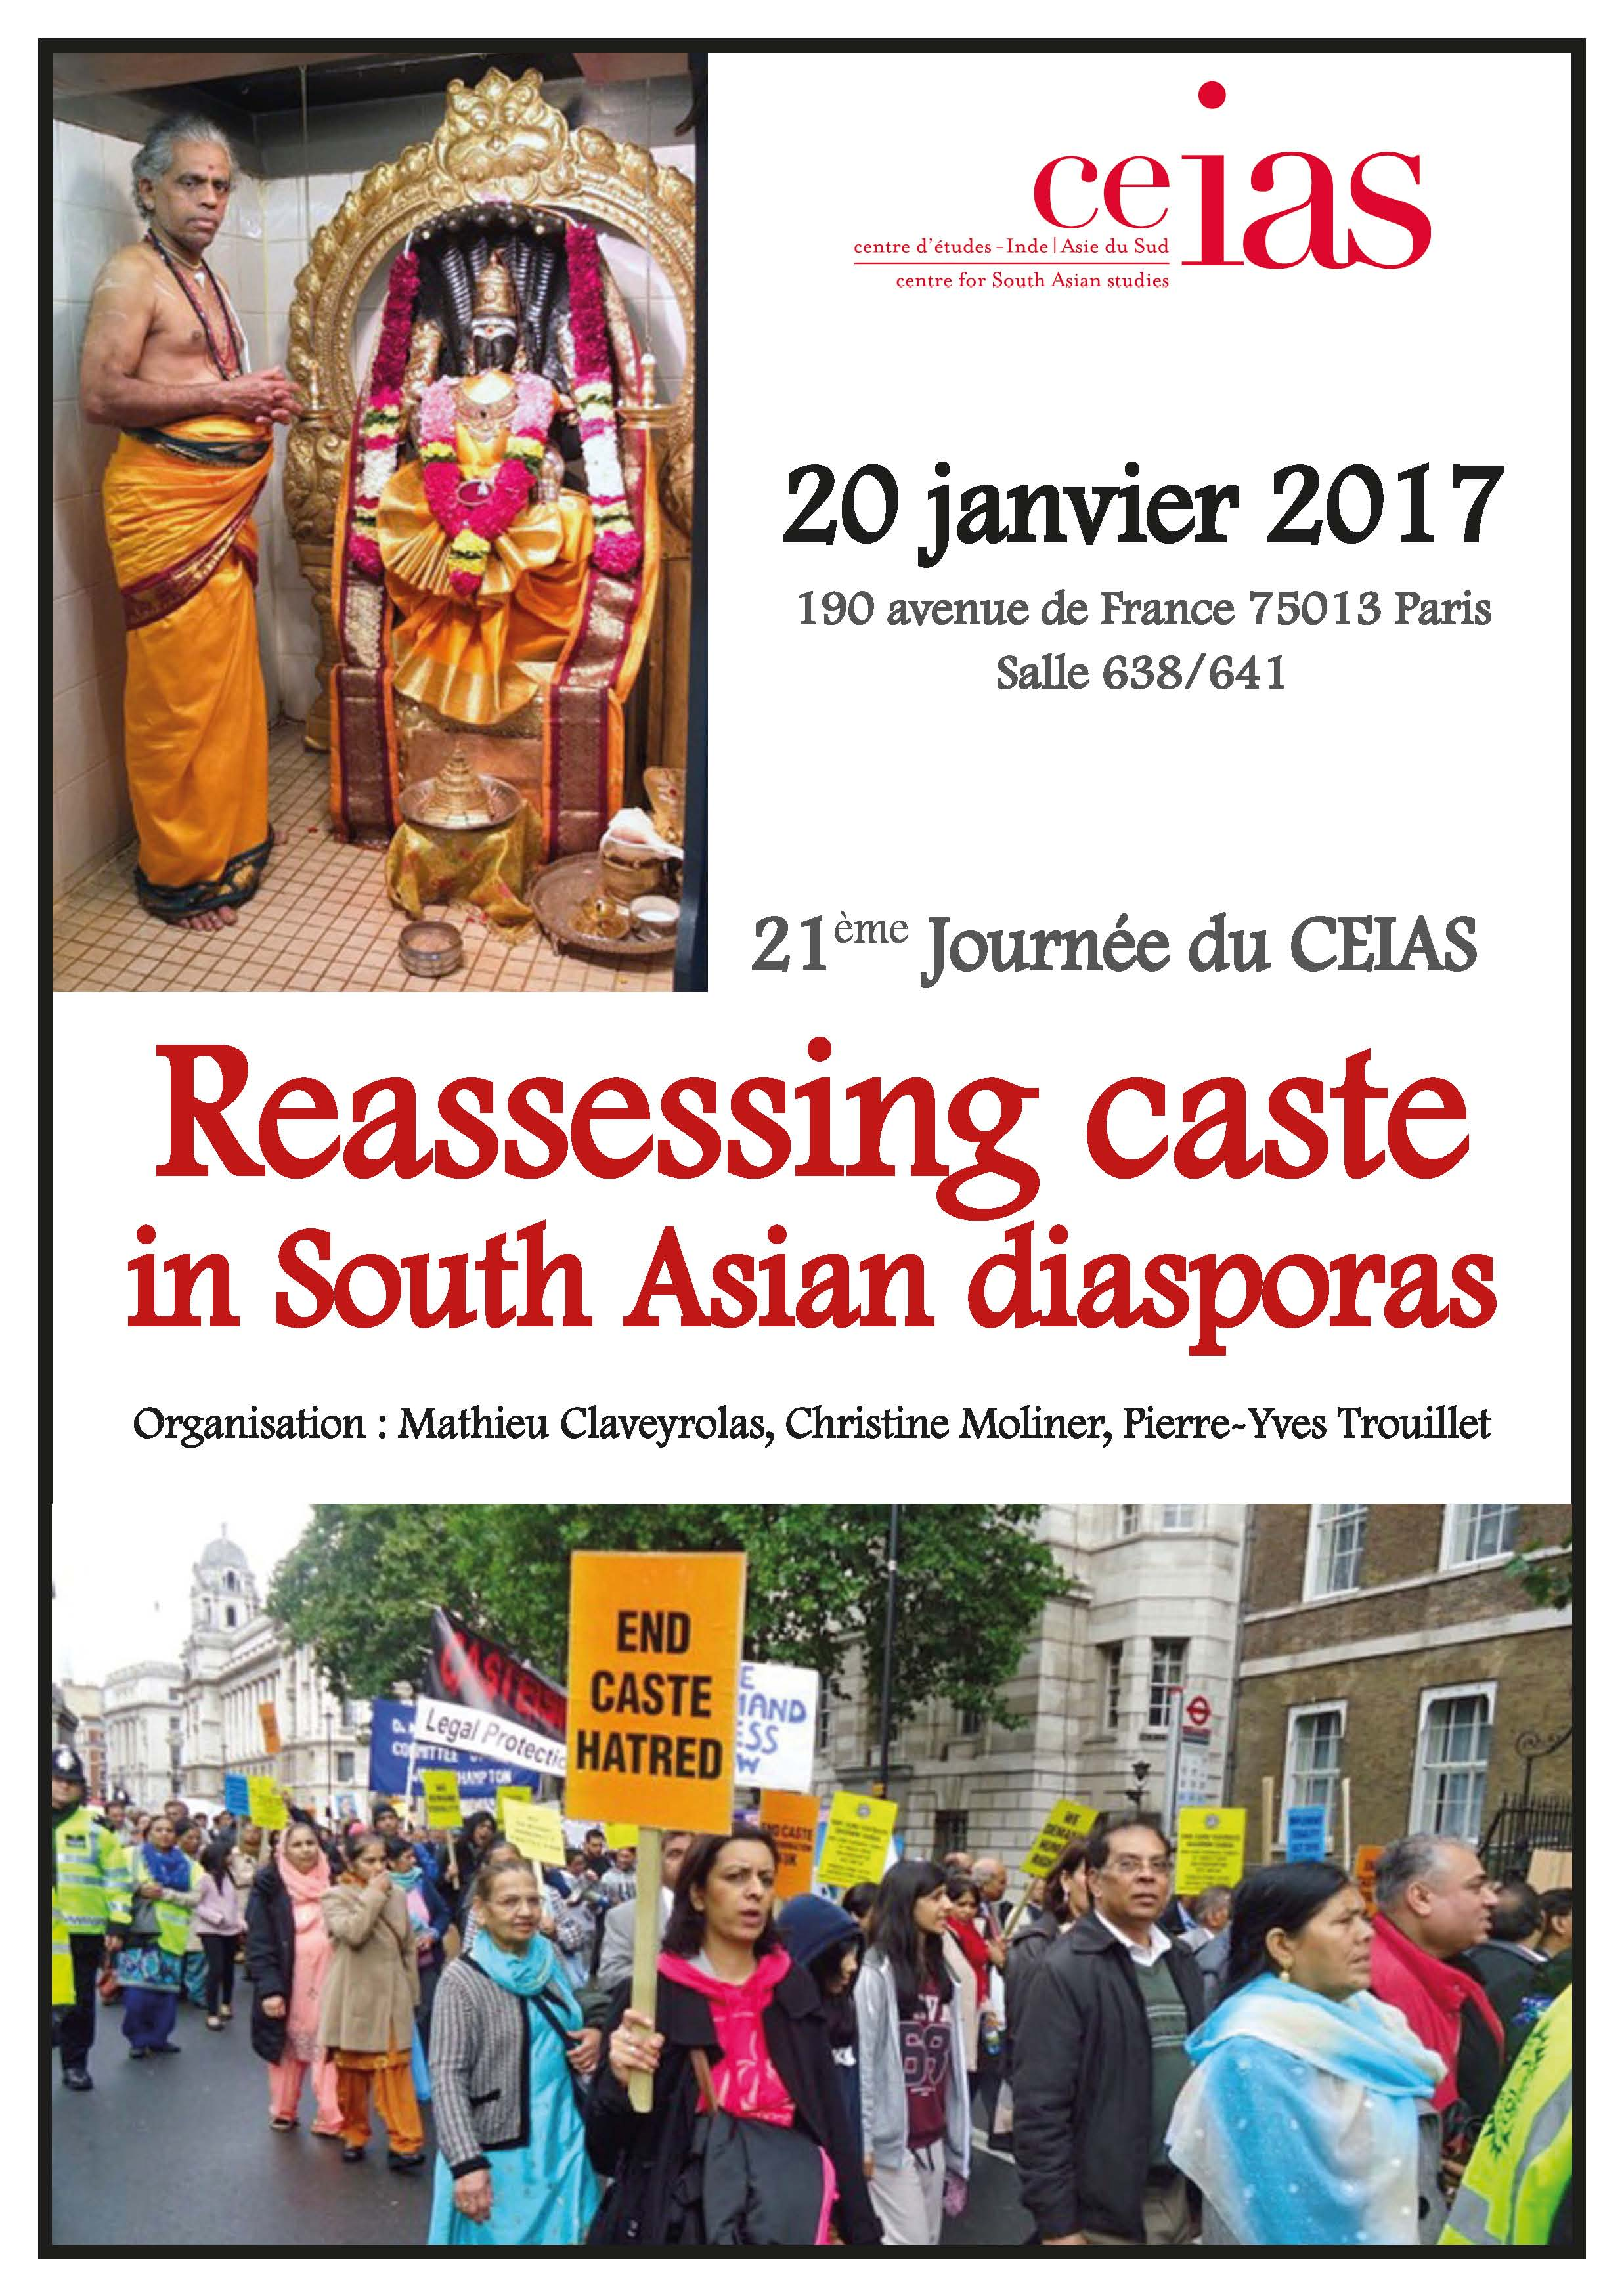 Reassessing caste in South Asian diasporas